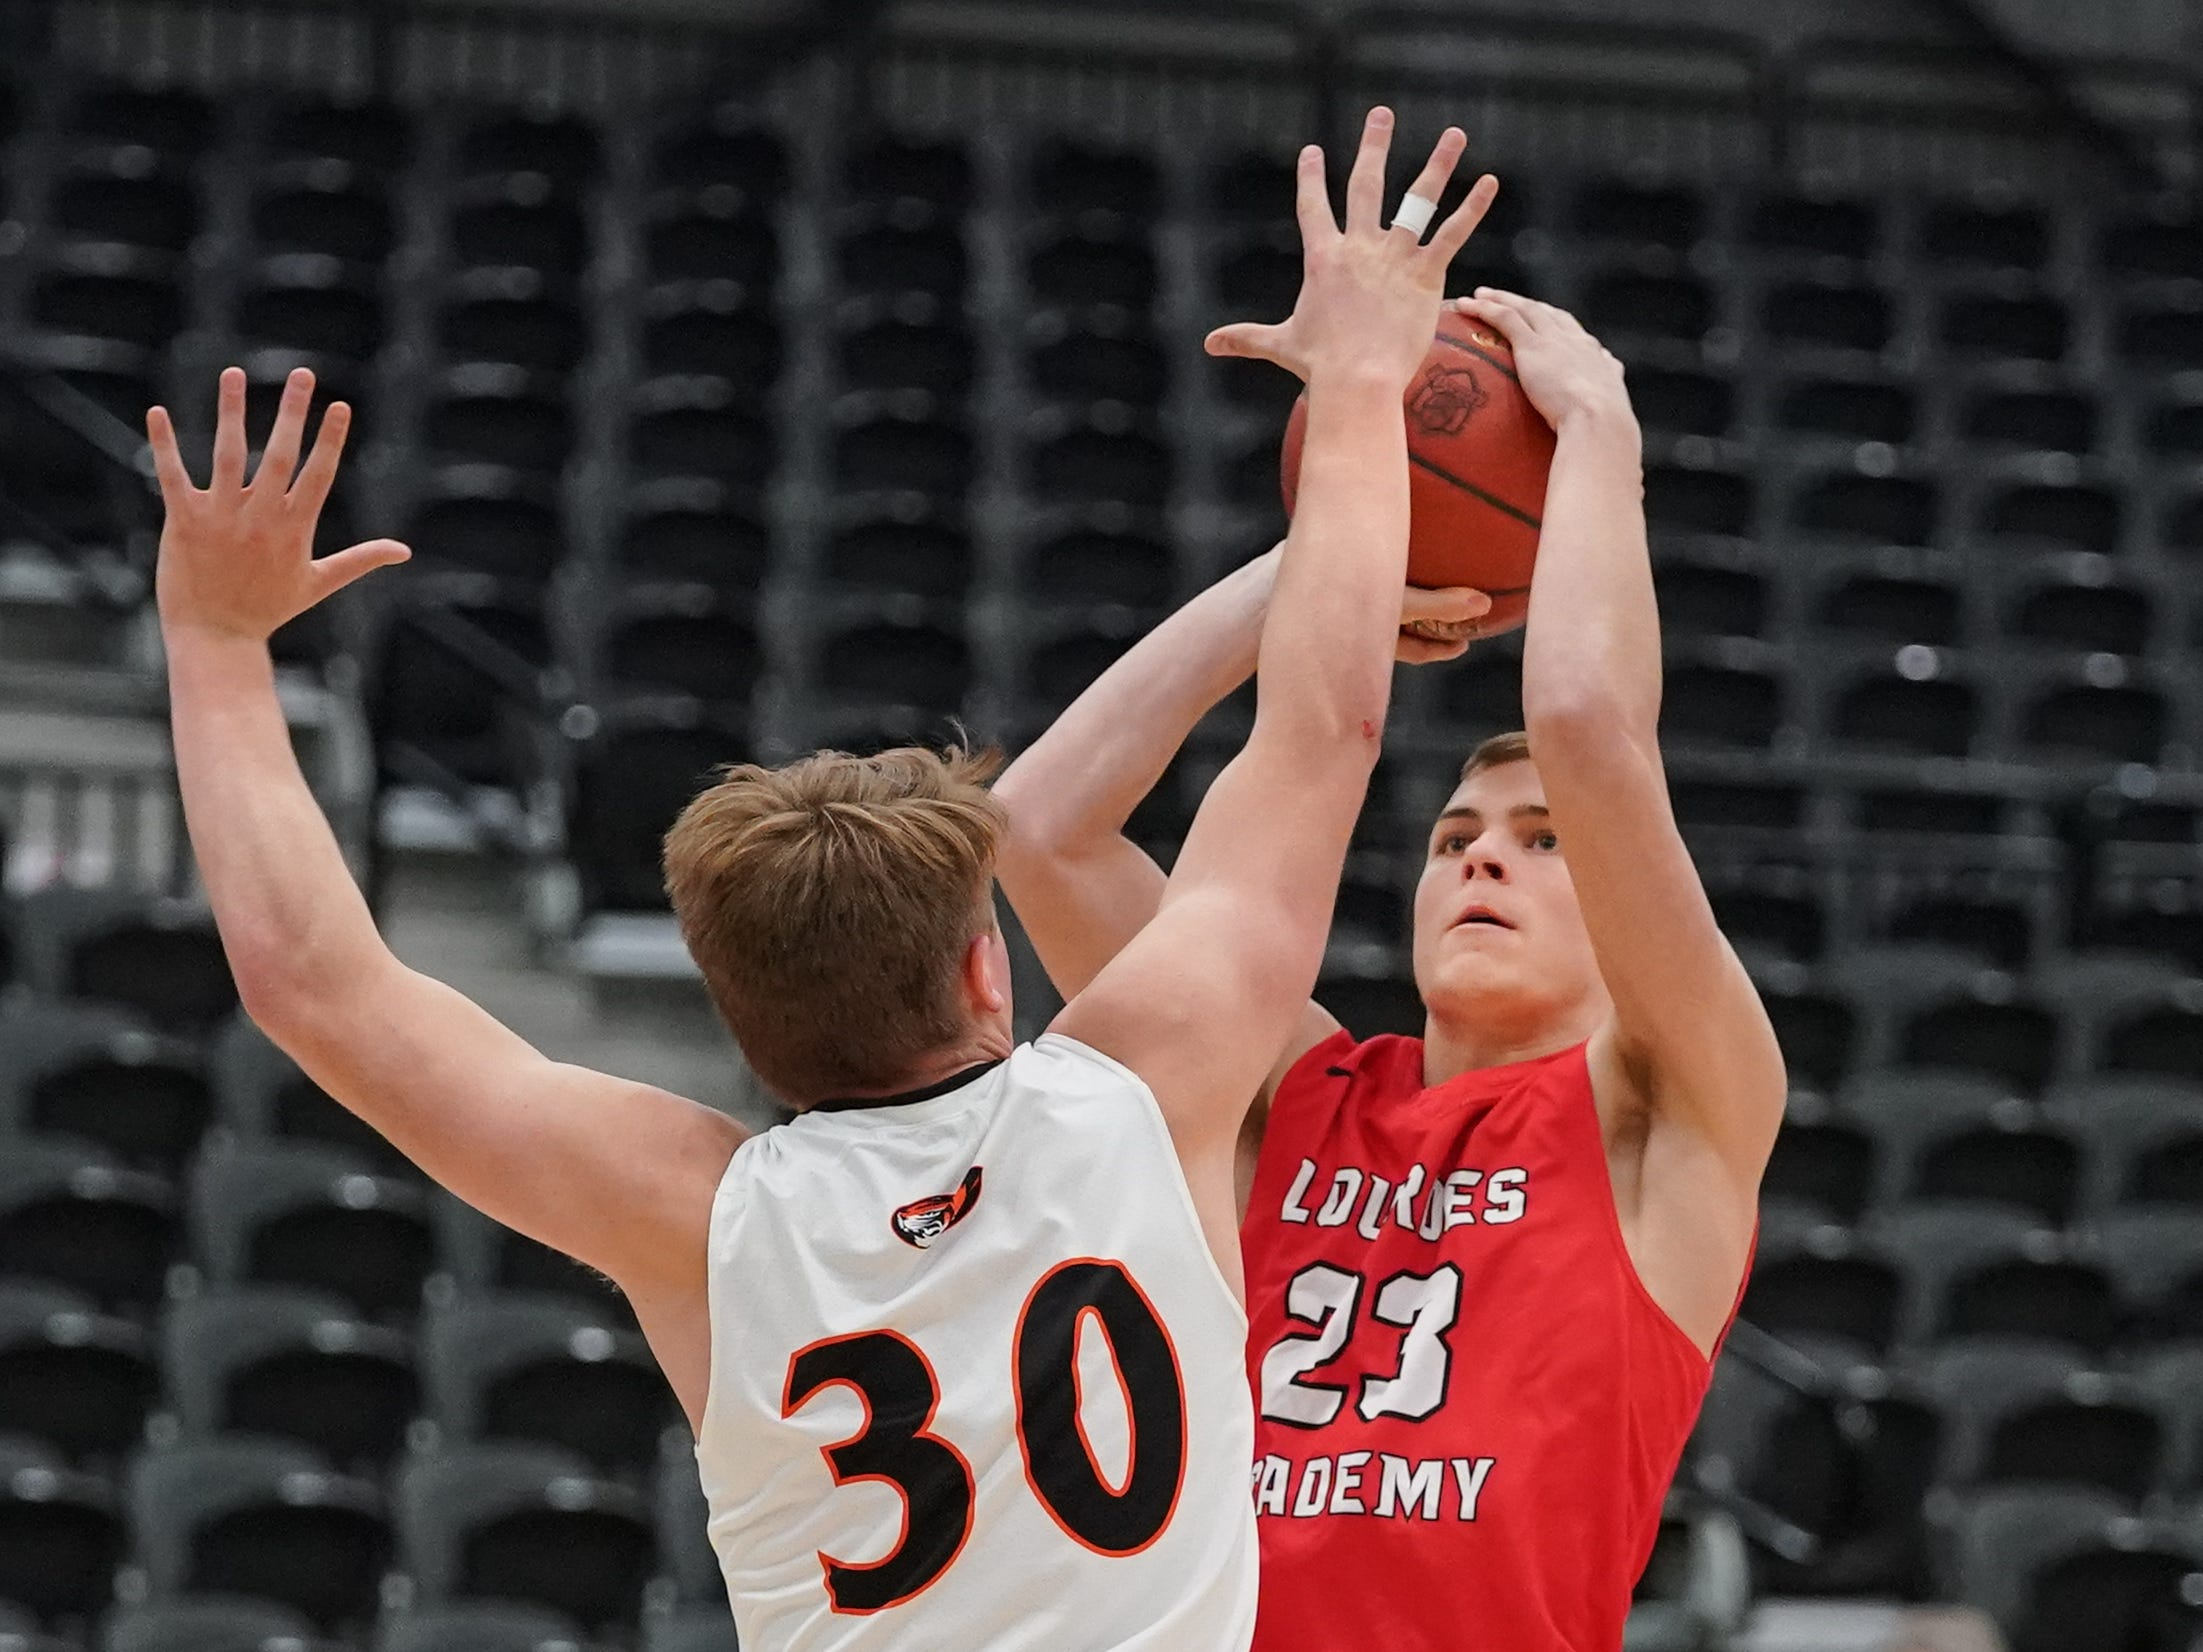 Max Husboe (30) of Ripon tries to block a shot by Nathan Kaull (23) of Lourdes. The Lourdes Knights and Ripon Tigers met in a nonconference basketball game Saturday afternoon, December 29, 2018 at the Menomonie Nation Arena in Oshkosh.